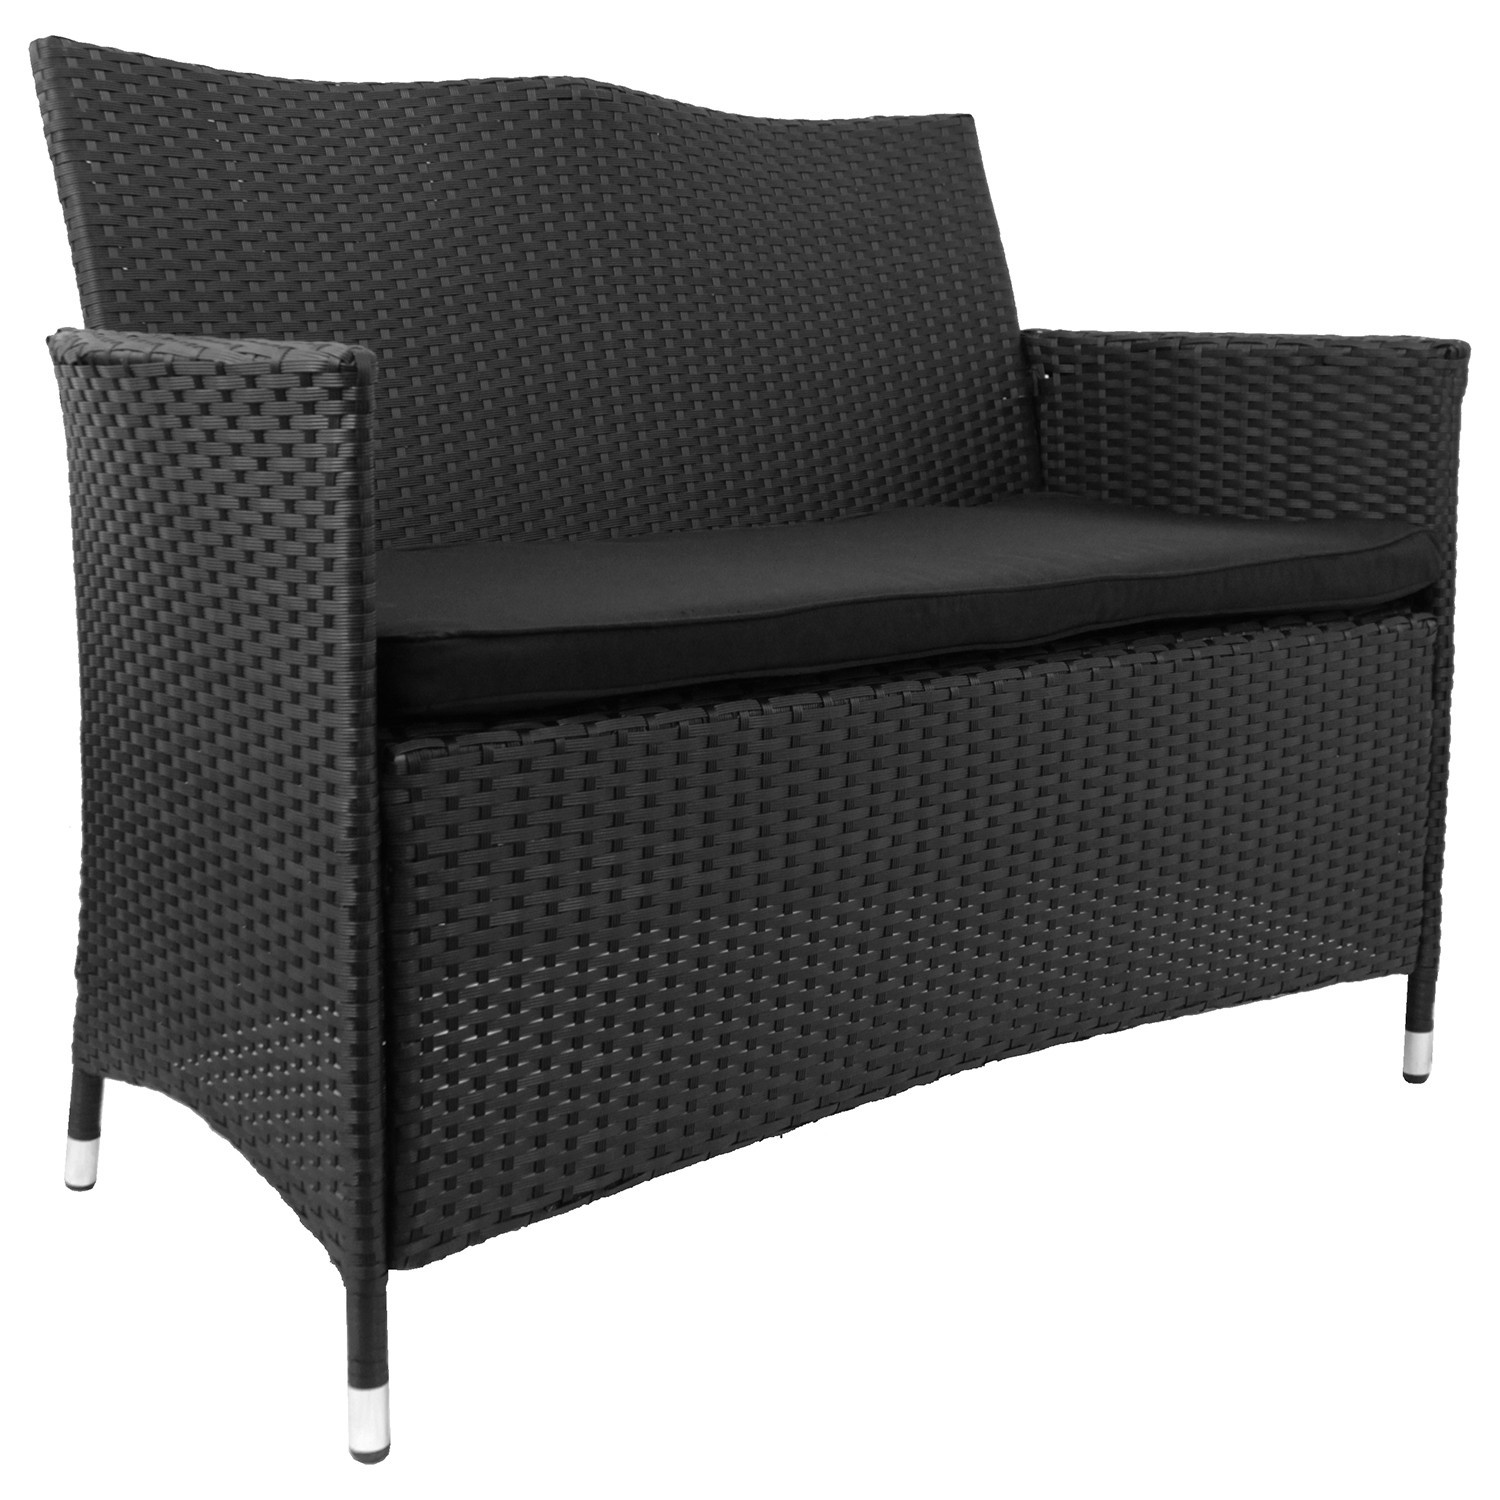 sitzbank 2 sitzer gartenbank bank metall polyrattan inkl. Black Bedroom Furniture Sets. Home Design Ideas